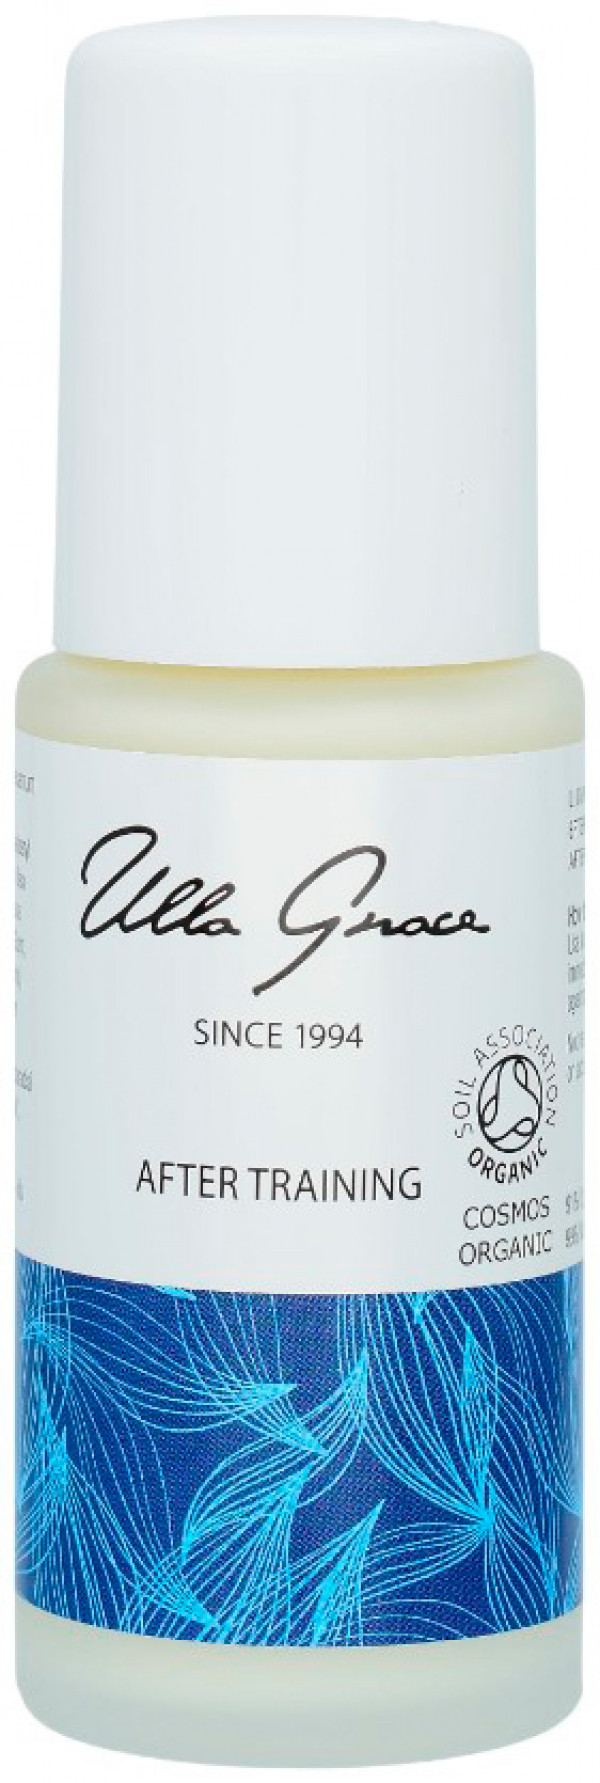 After Training Lotion  50ml